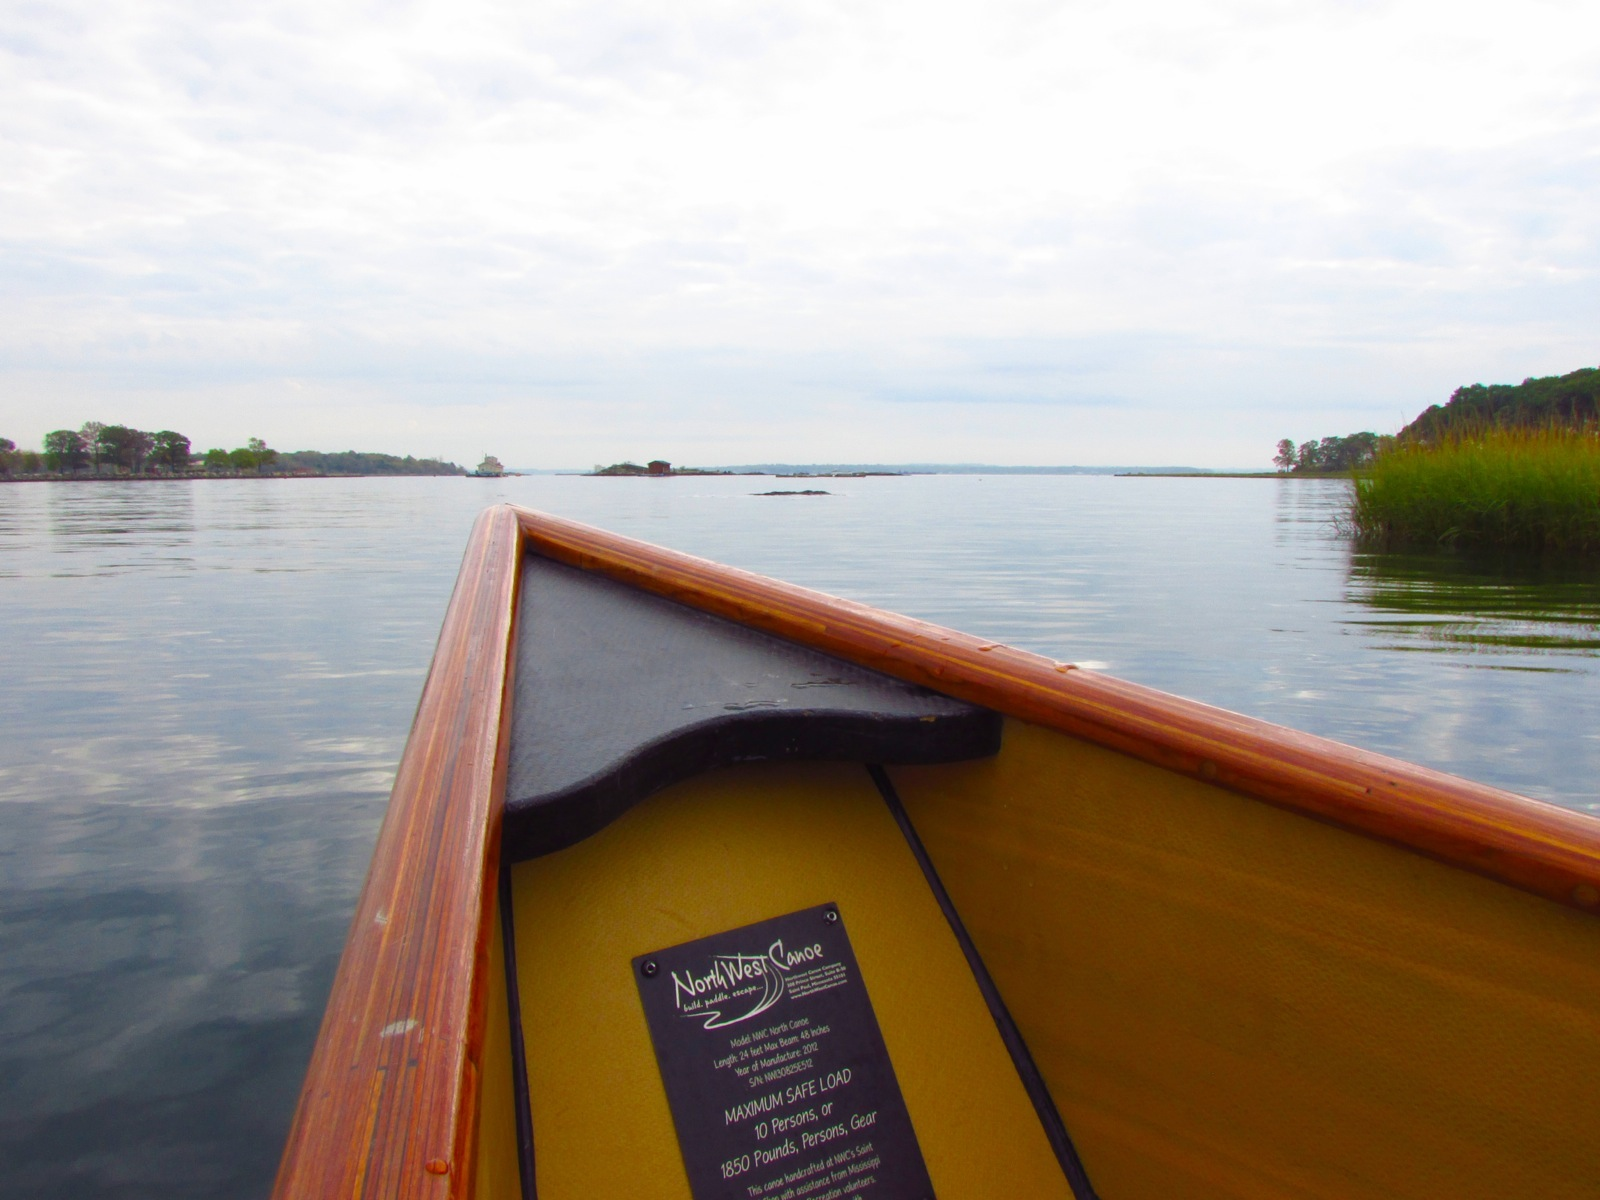 a photo of the bow of the canoe on a calm river on a sunny day